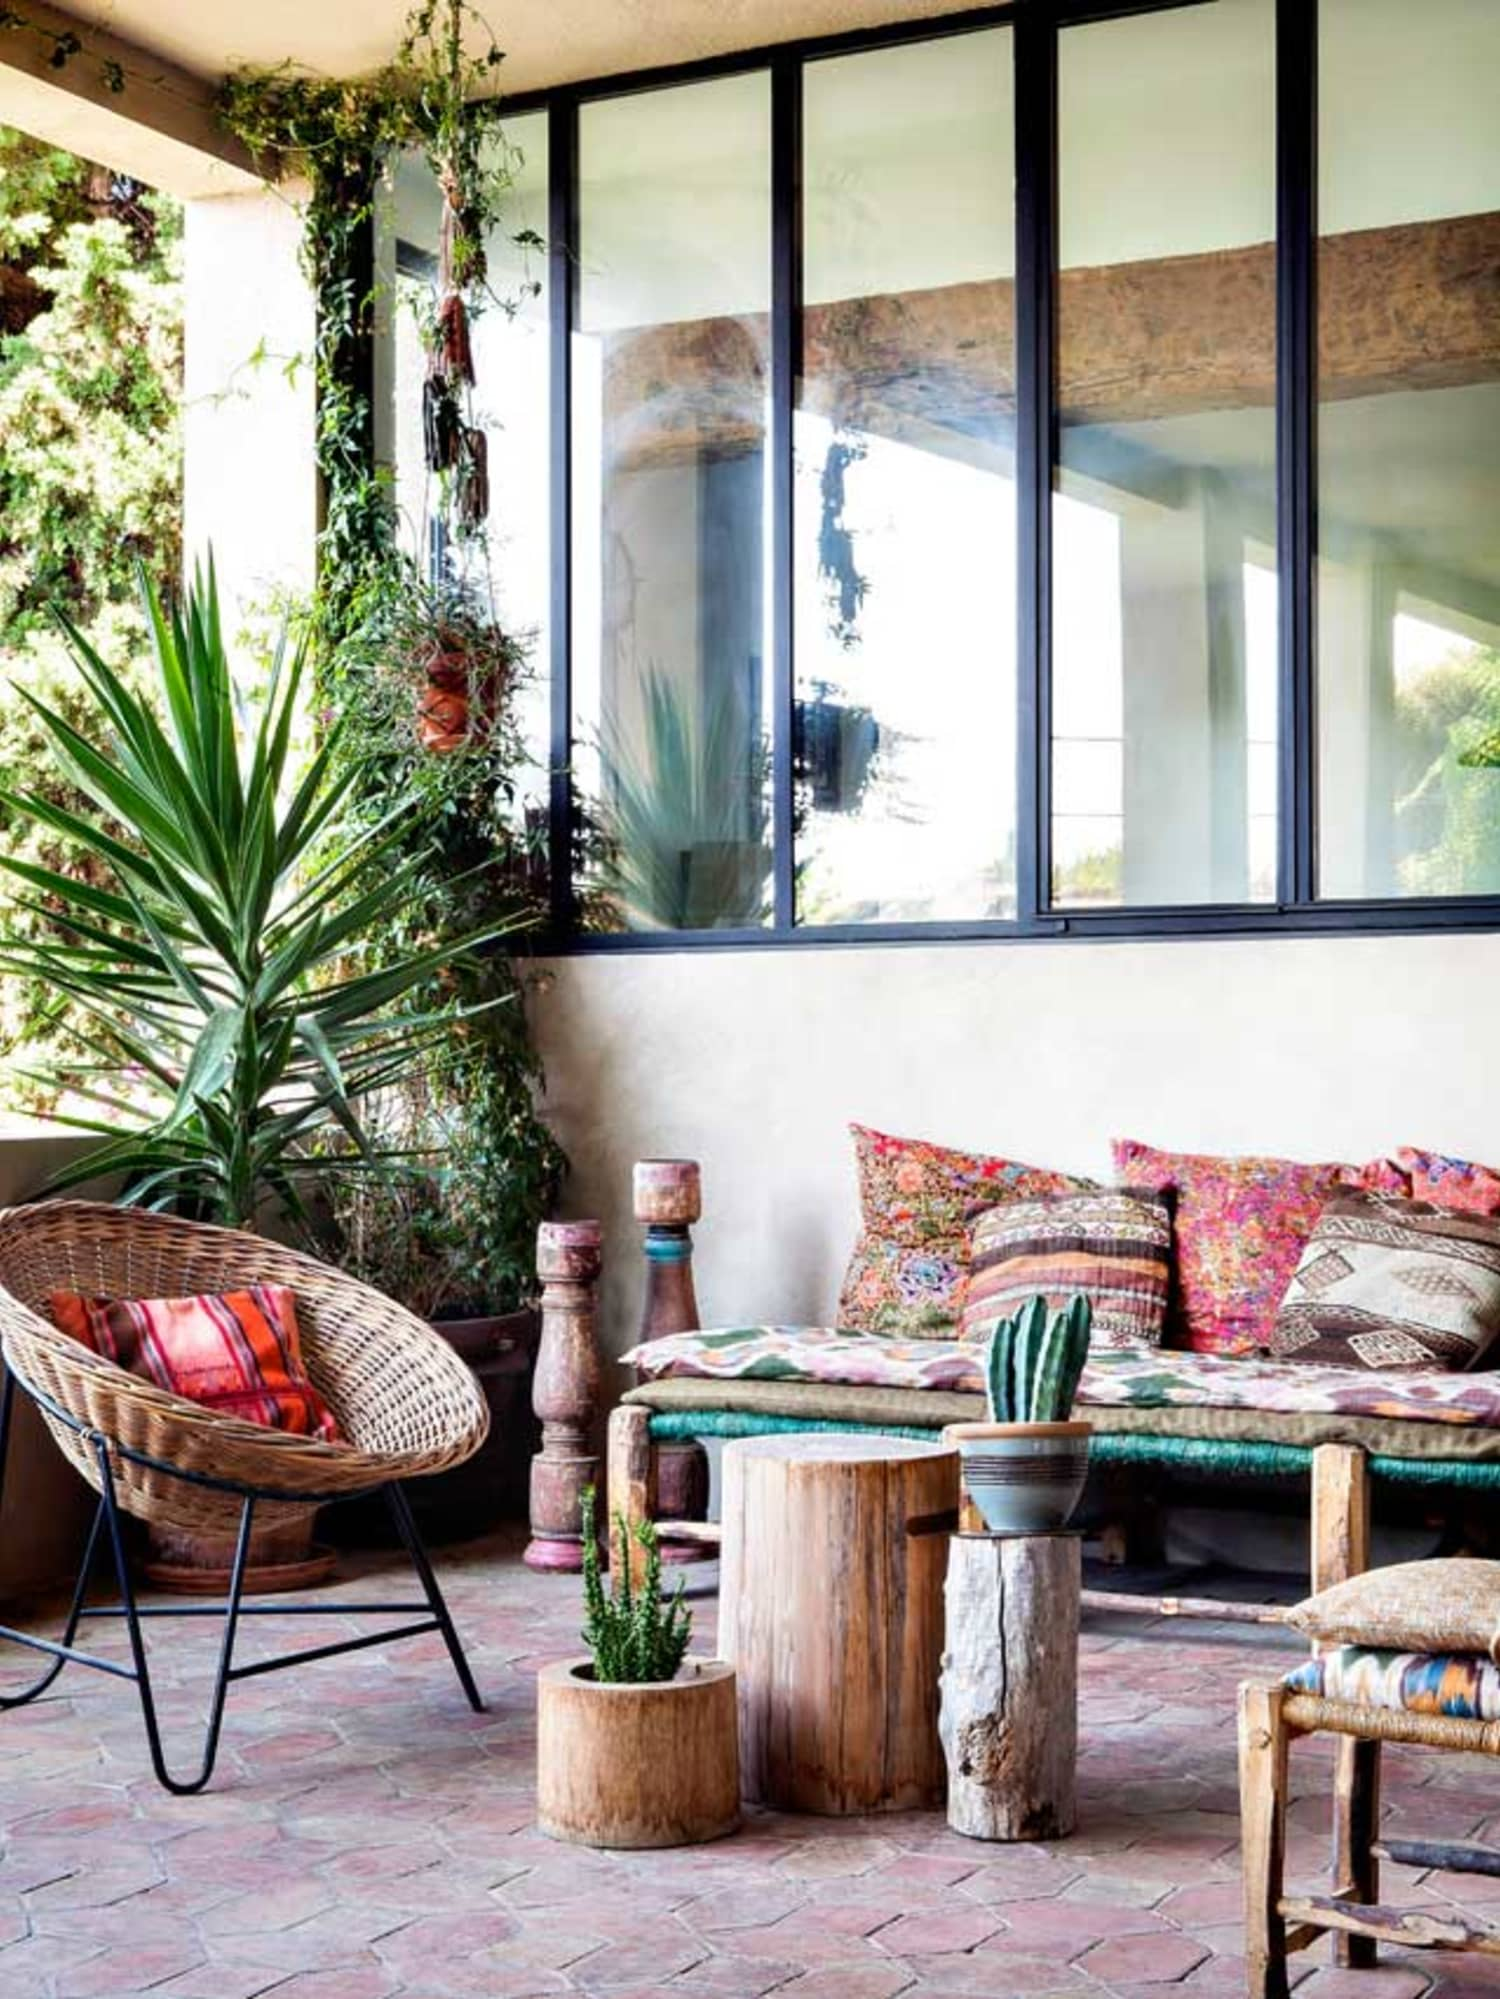 Bohemian Decor Ideas for Outdoor Patio Space | Apartment ... on Bohemian Patio Ideas id=21864